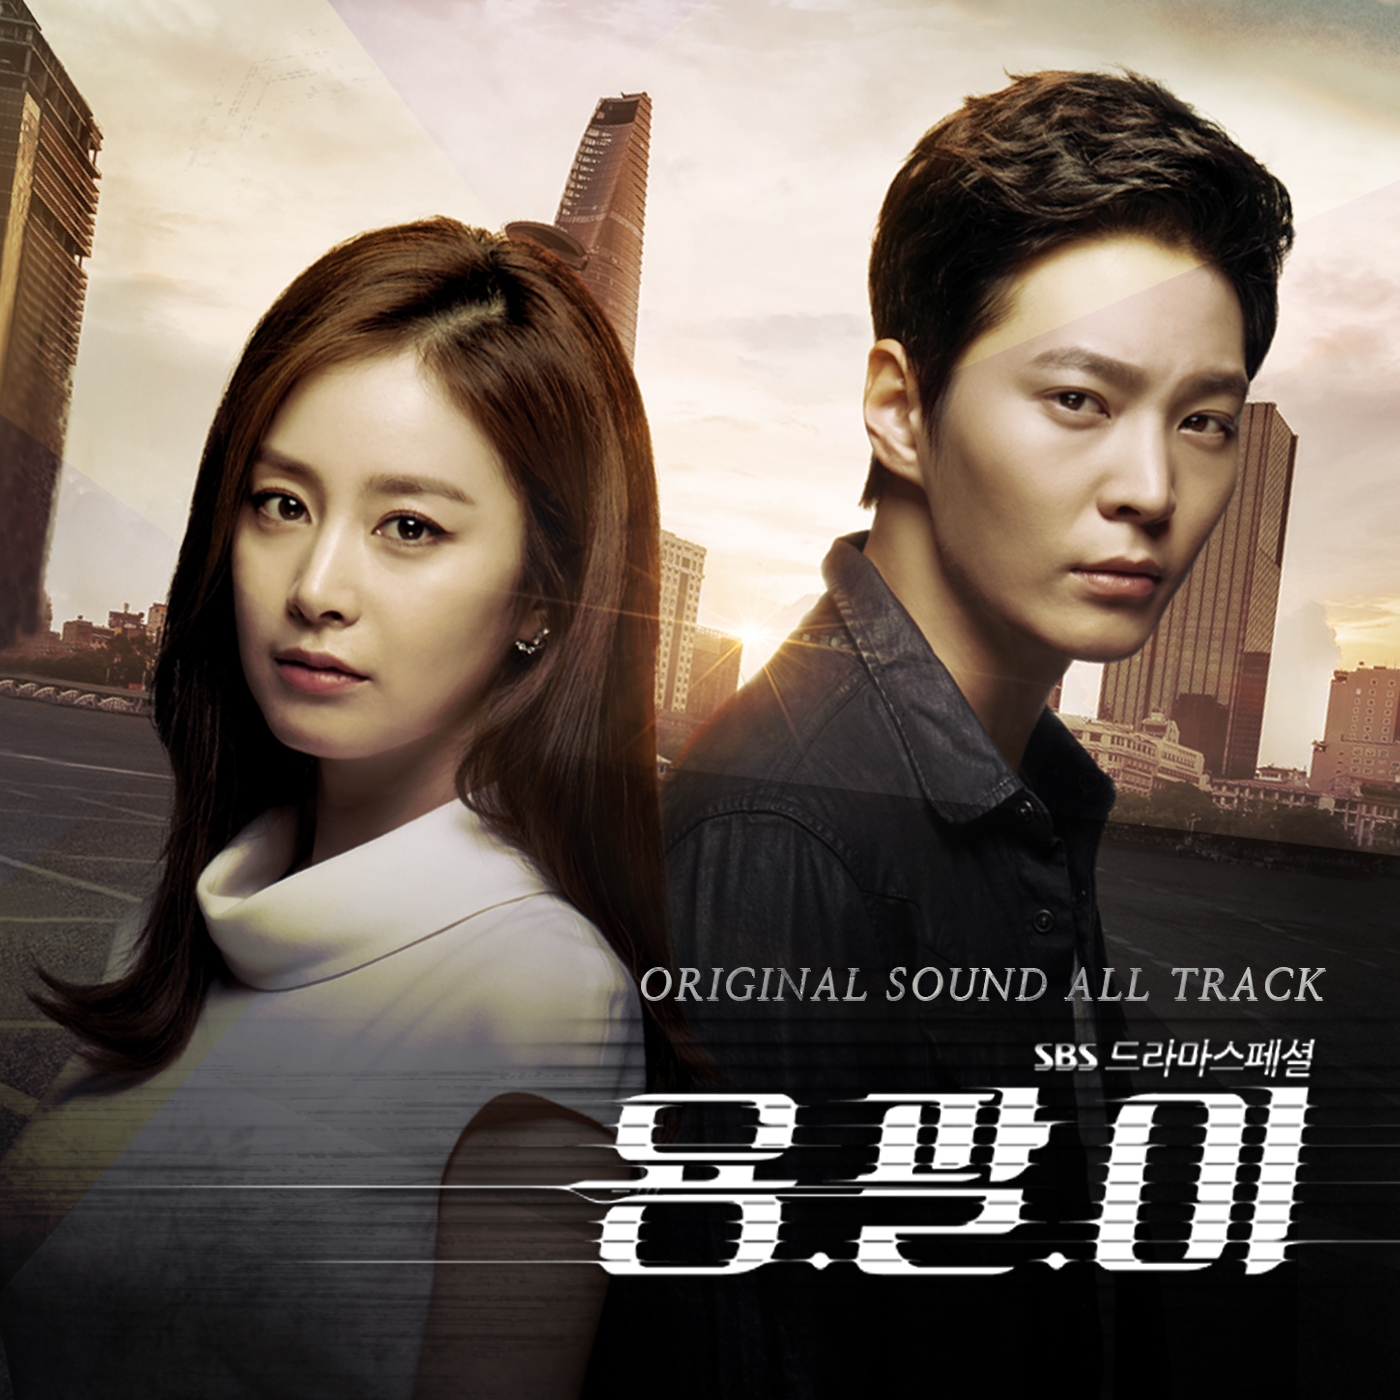 [VA] Yong Pal / Yongpalyi OST (Full OST Album) - Various Artists [2 CD] K2Ost free mp3 download korean song kpop kdrama ost lyric 320 kbps